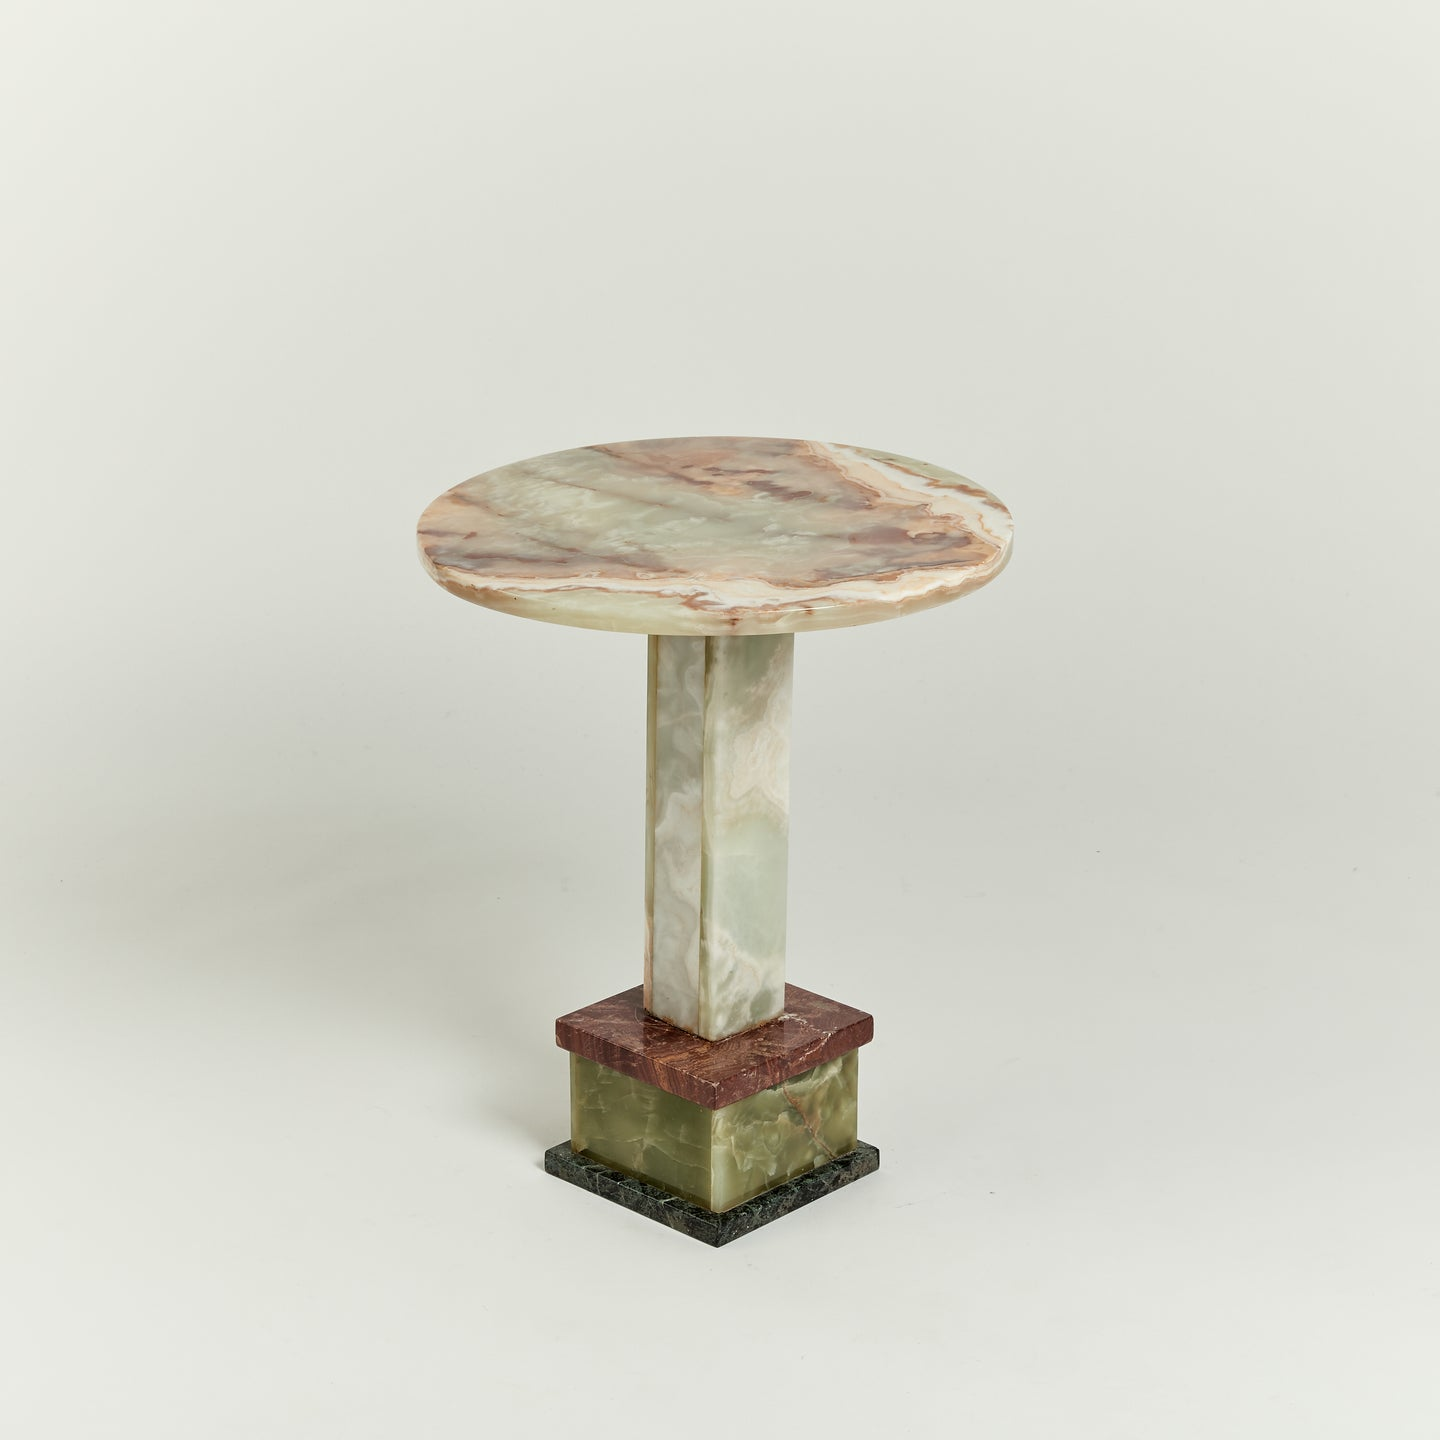 Vintage multi-coloured marble table